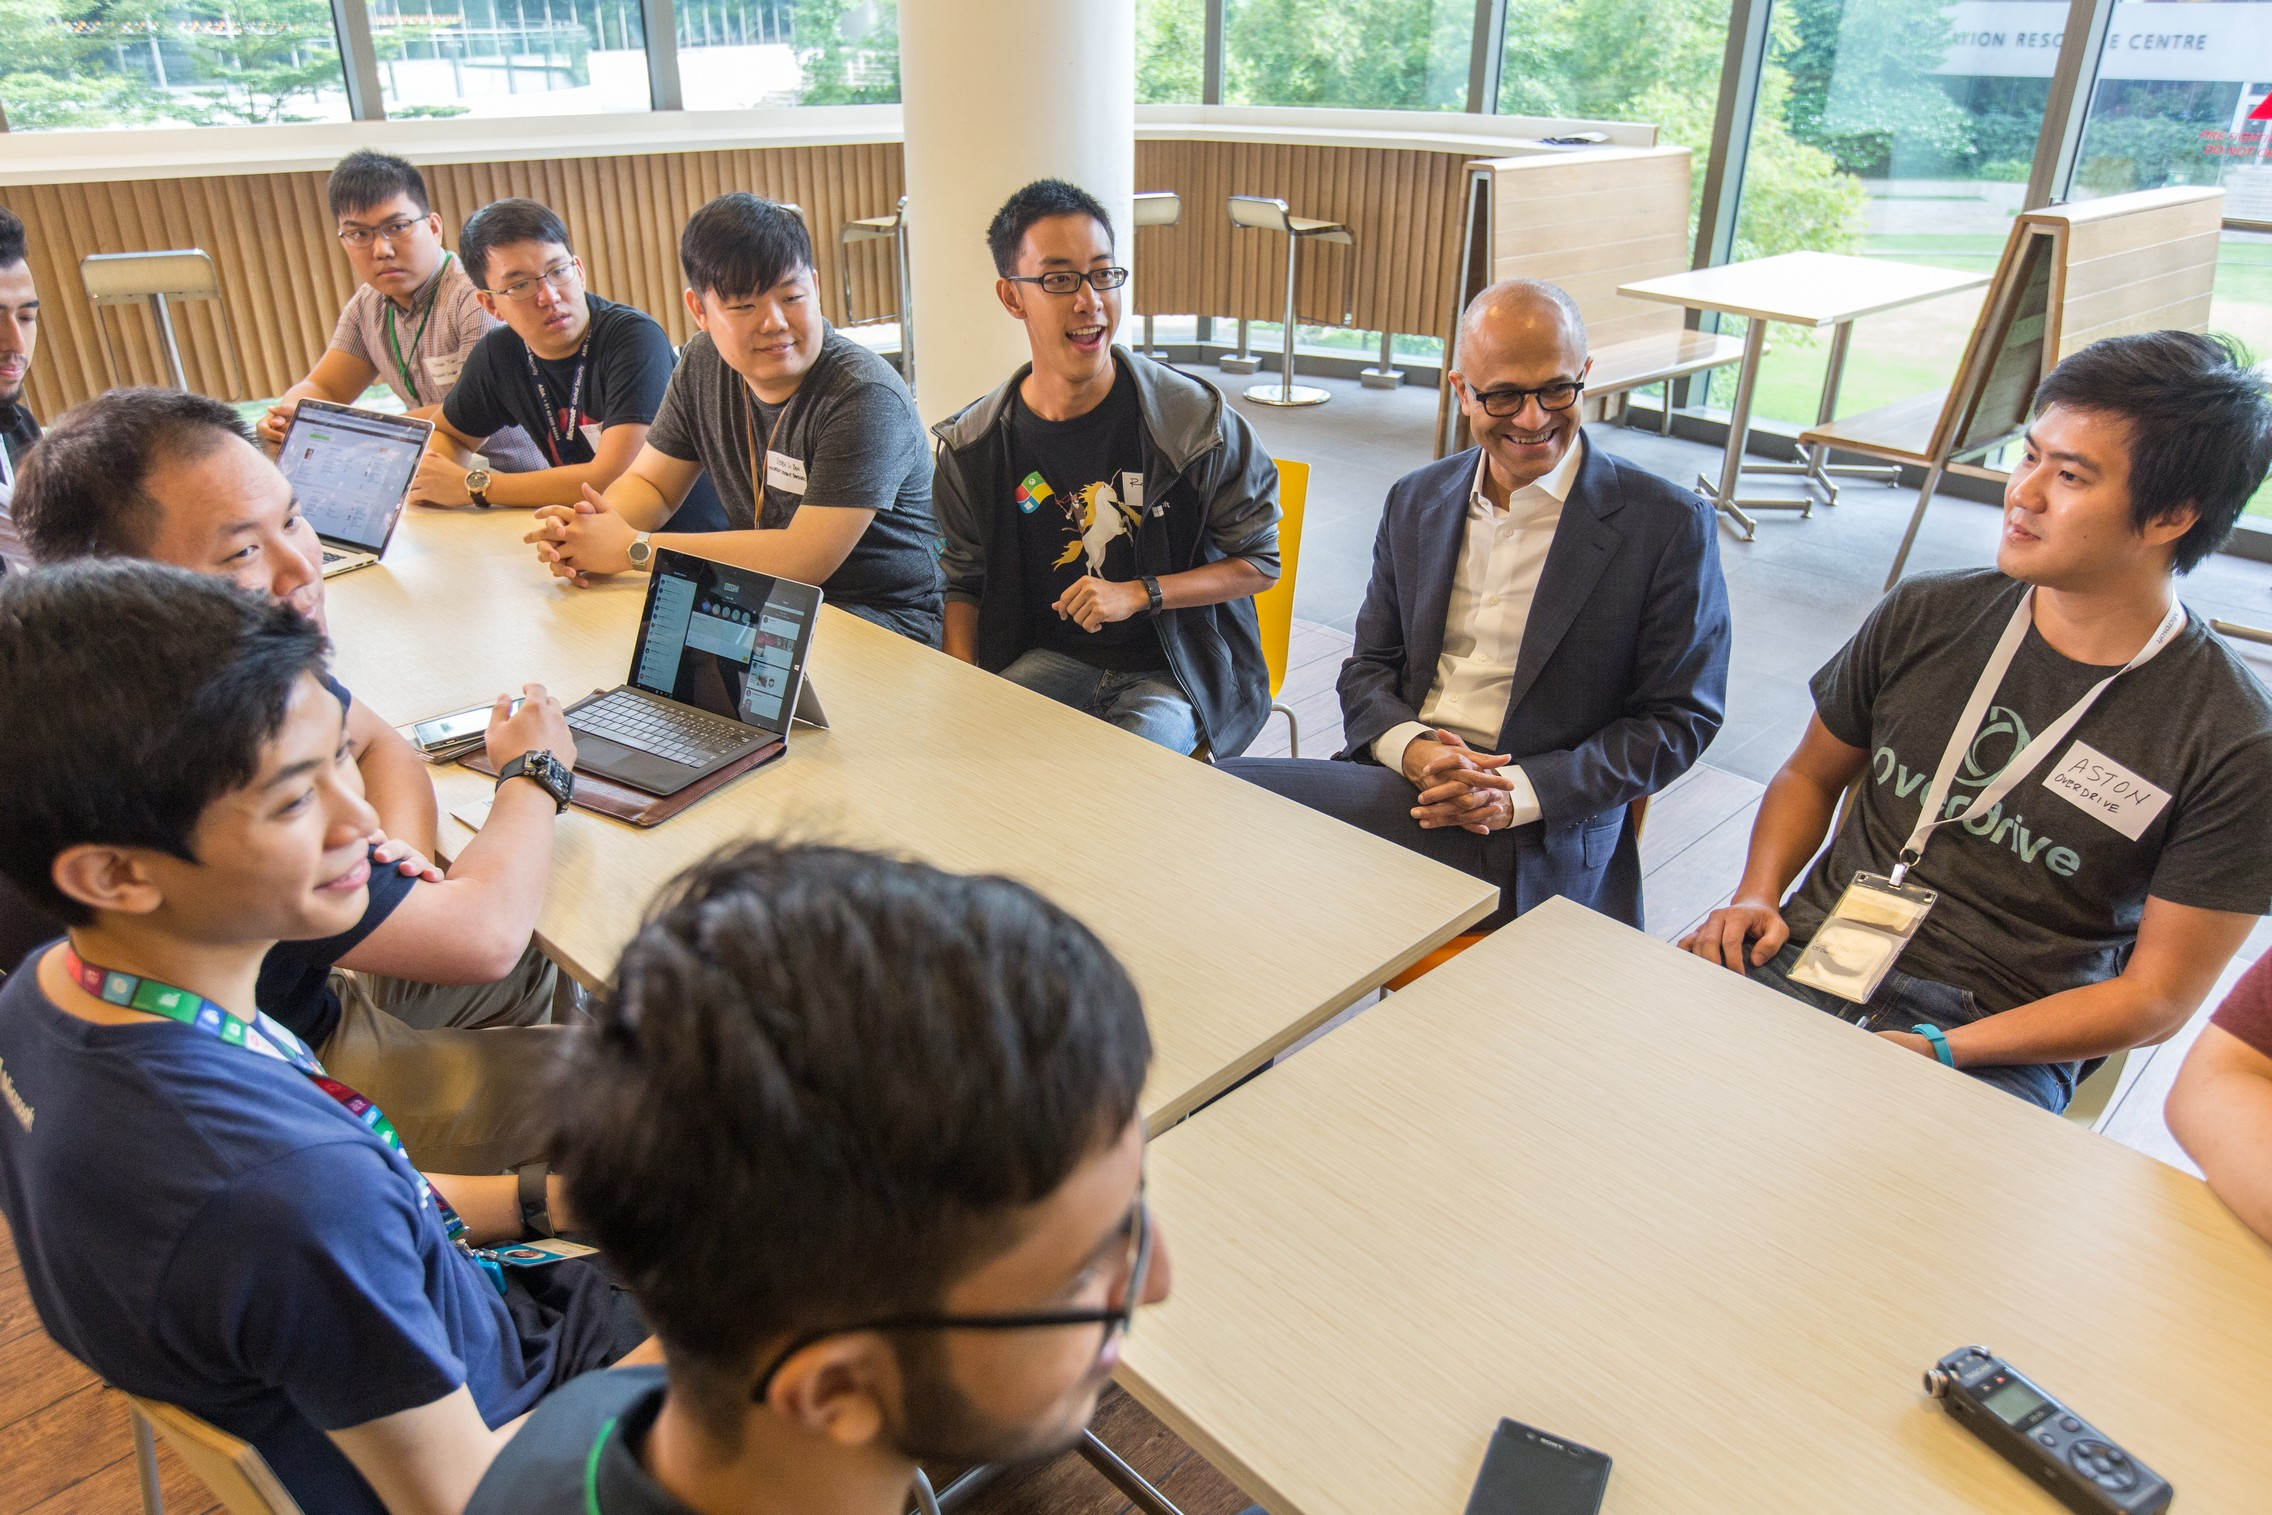 Microsoft CEO Satya Nadella chats with students and developers over breakfast on their innovations and how they can leverage Microsoft platforms to power new innovations.